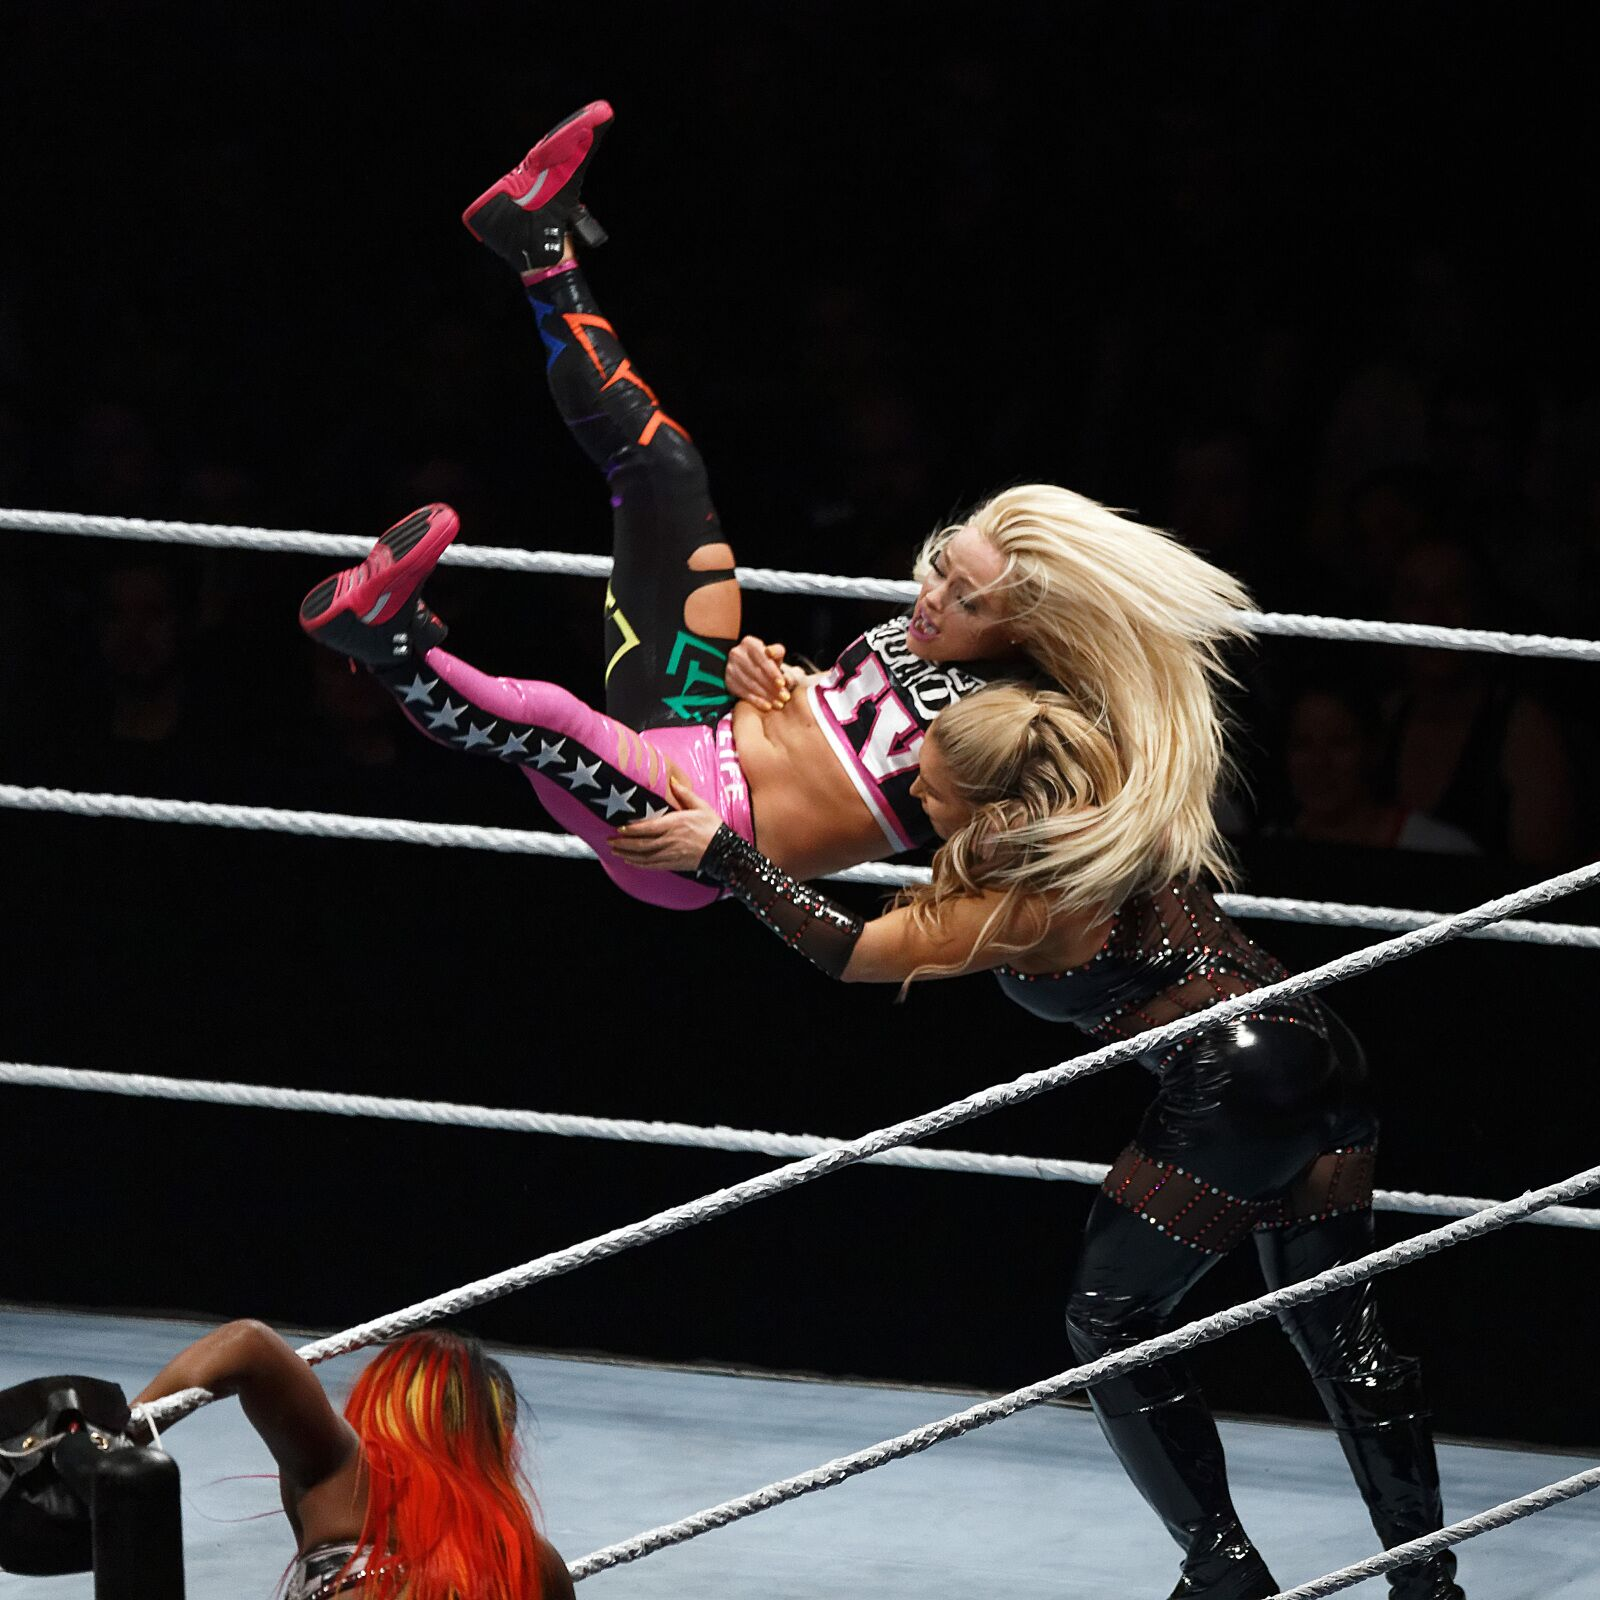 WWE: 5 up-and-coming stars primed for a breakout after the draft